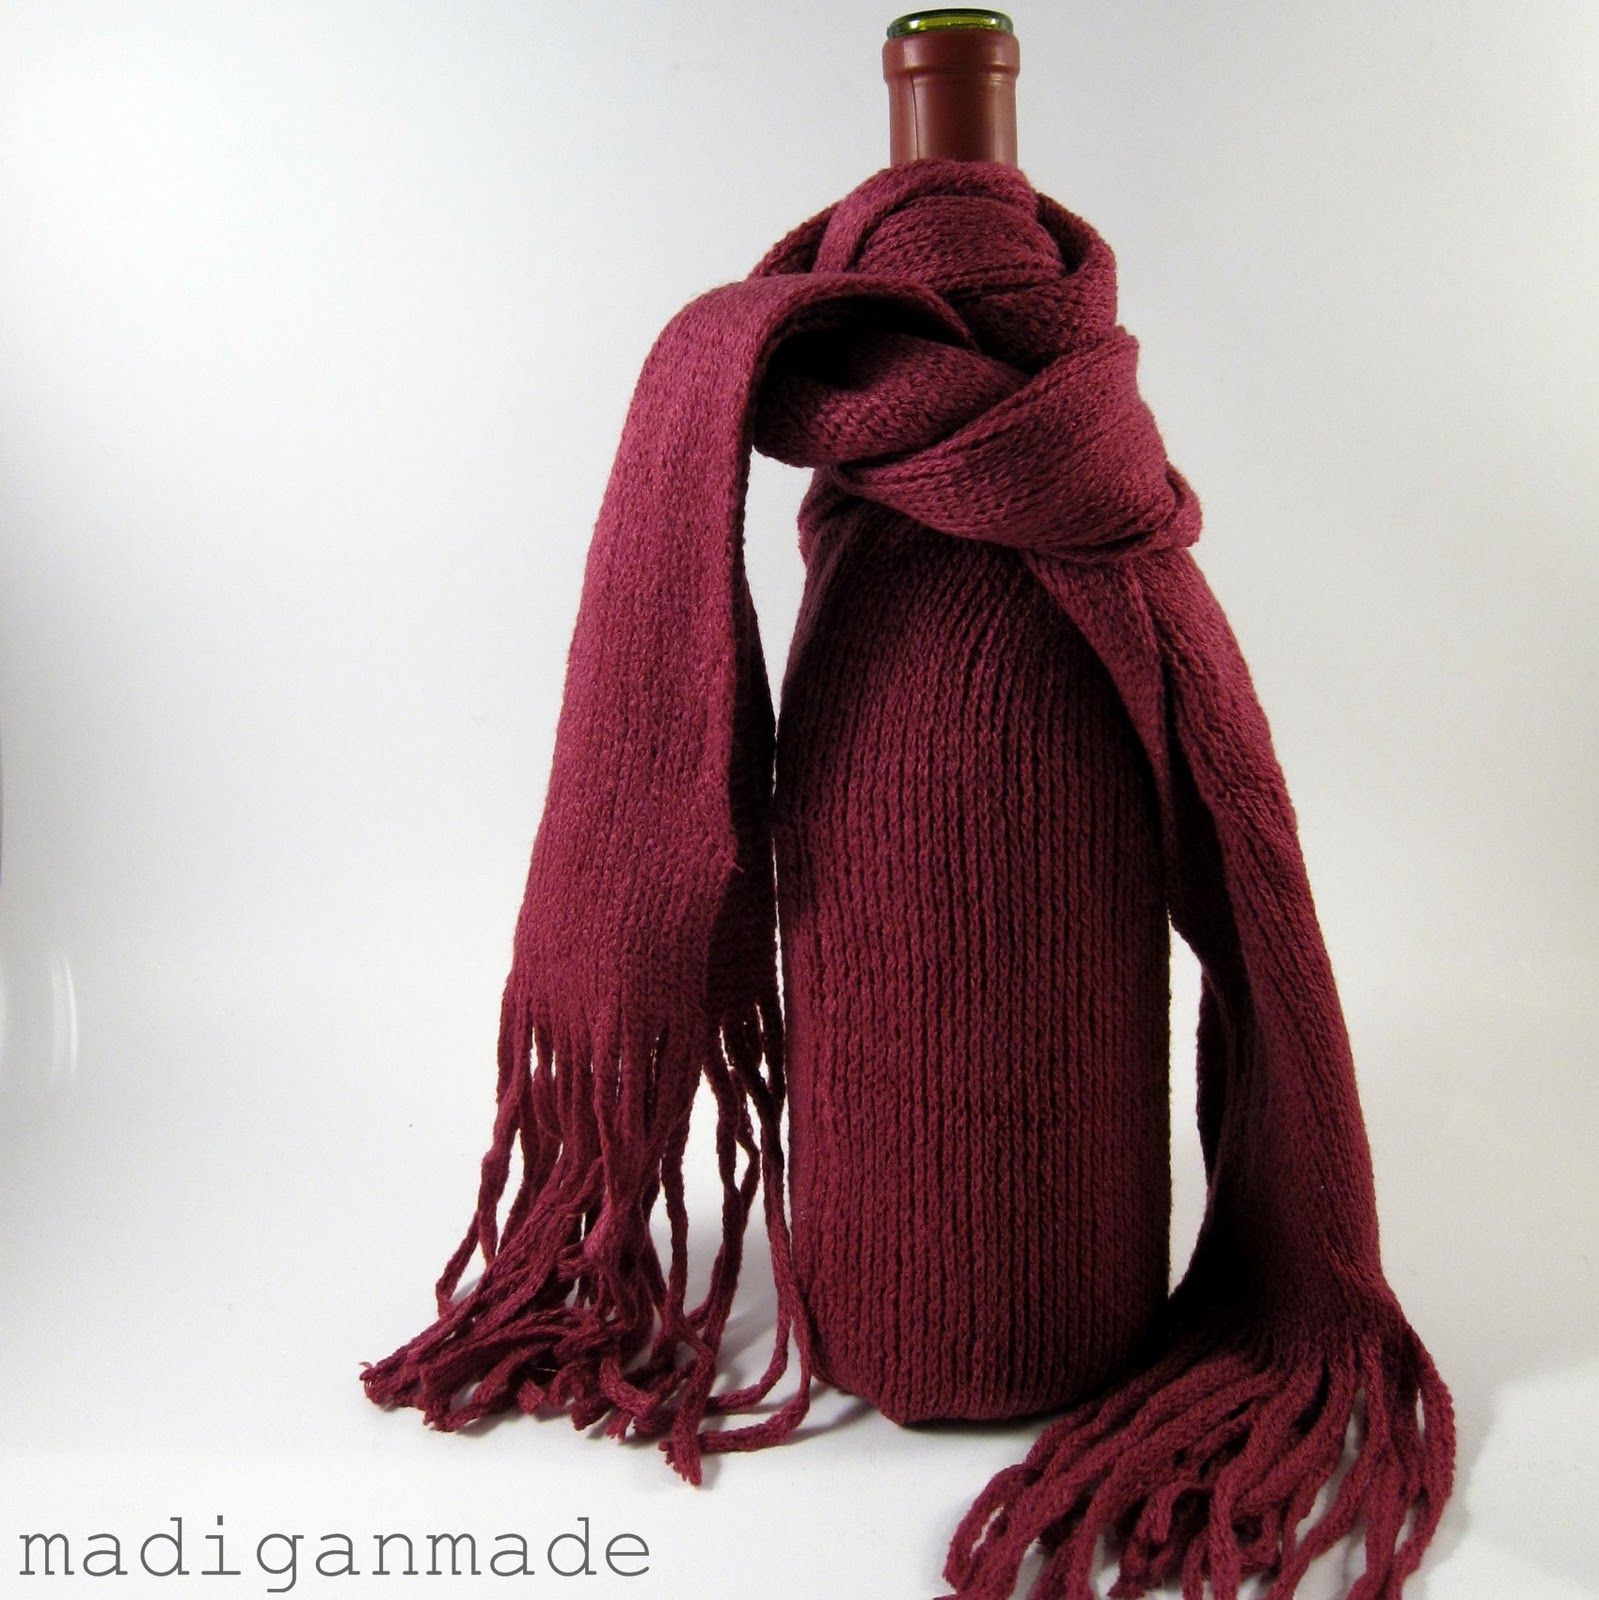 European Children S Fashion Designers Uncork Wine Hues For Fall Winter 14 15 Wine Gifts Diy Easy Hostess Gifts Wine Gift Bag